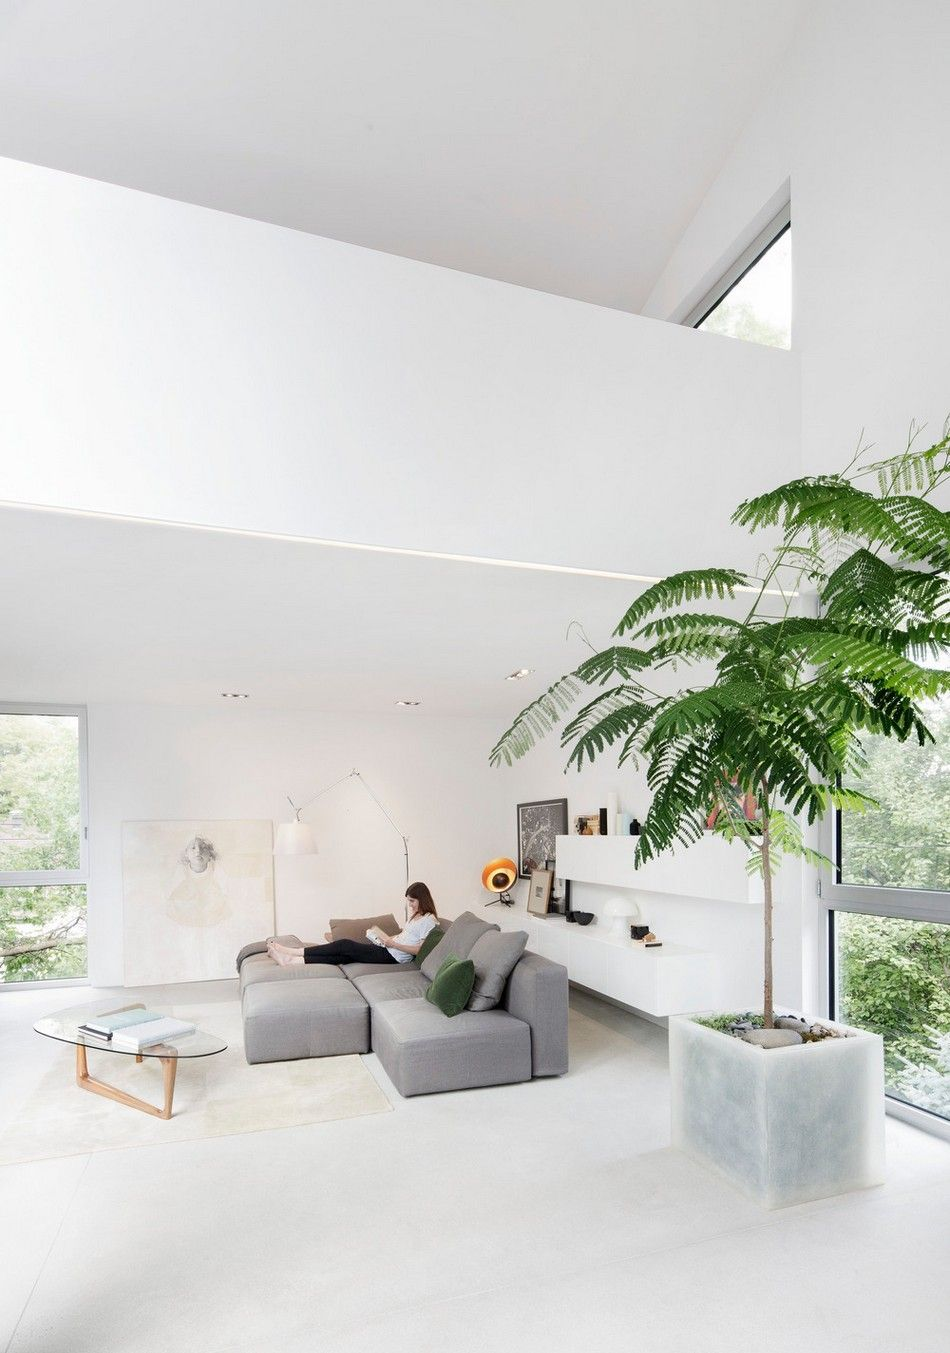 Contemporary Detached Dwelling Hiding Spatial Complexity in